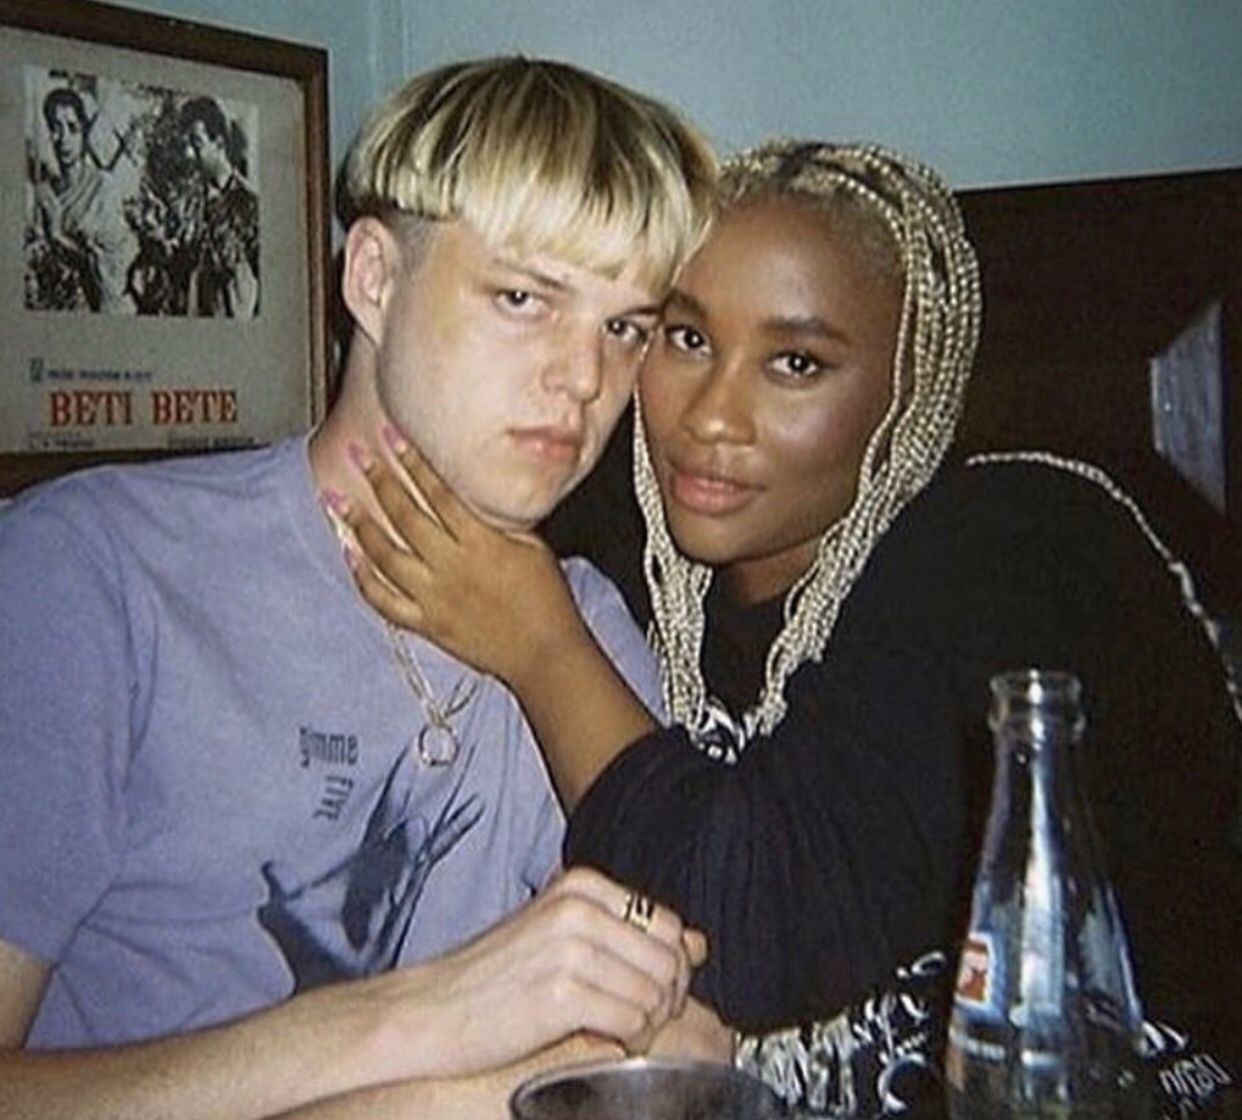 Pin by iamart3 on Hipster Swirl | Interracial marriage